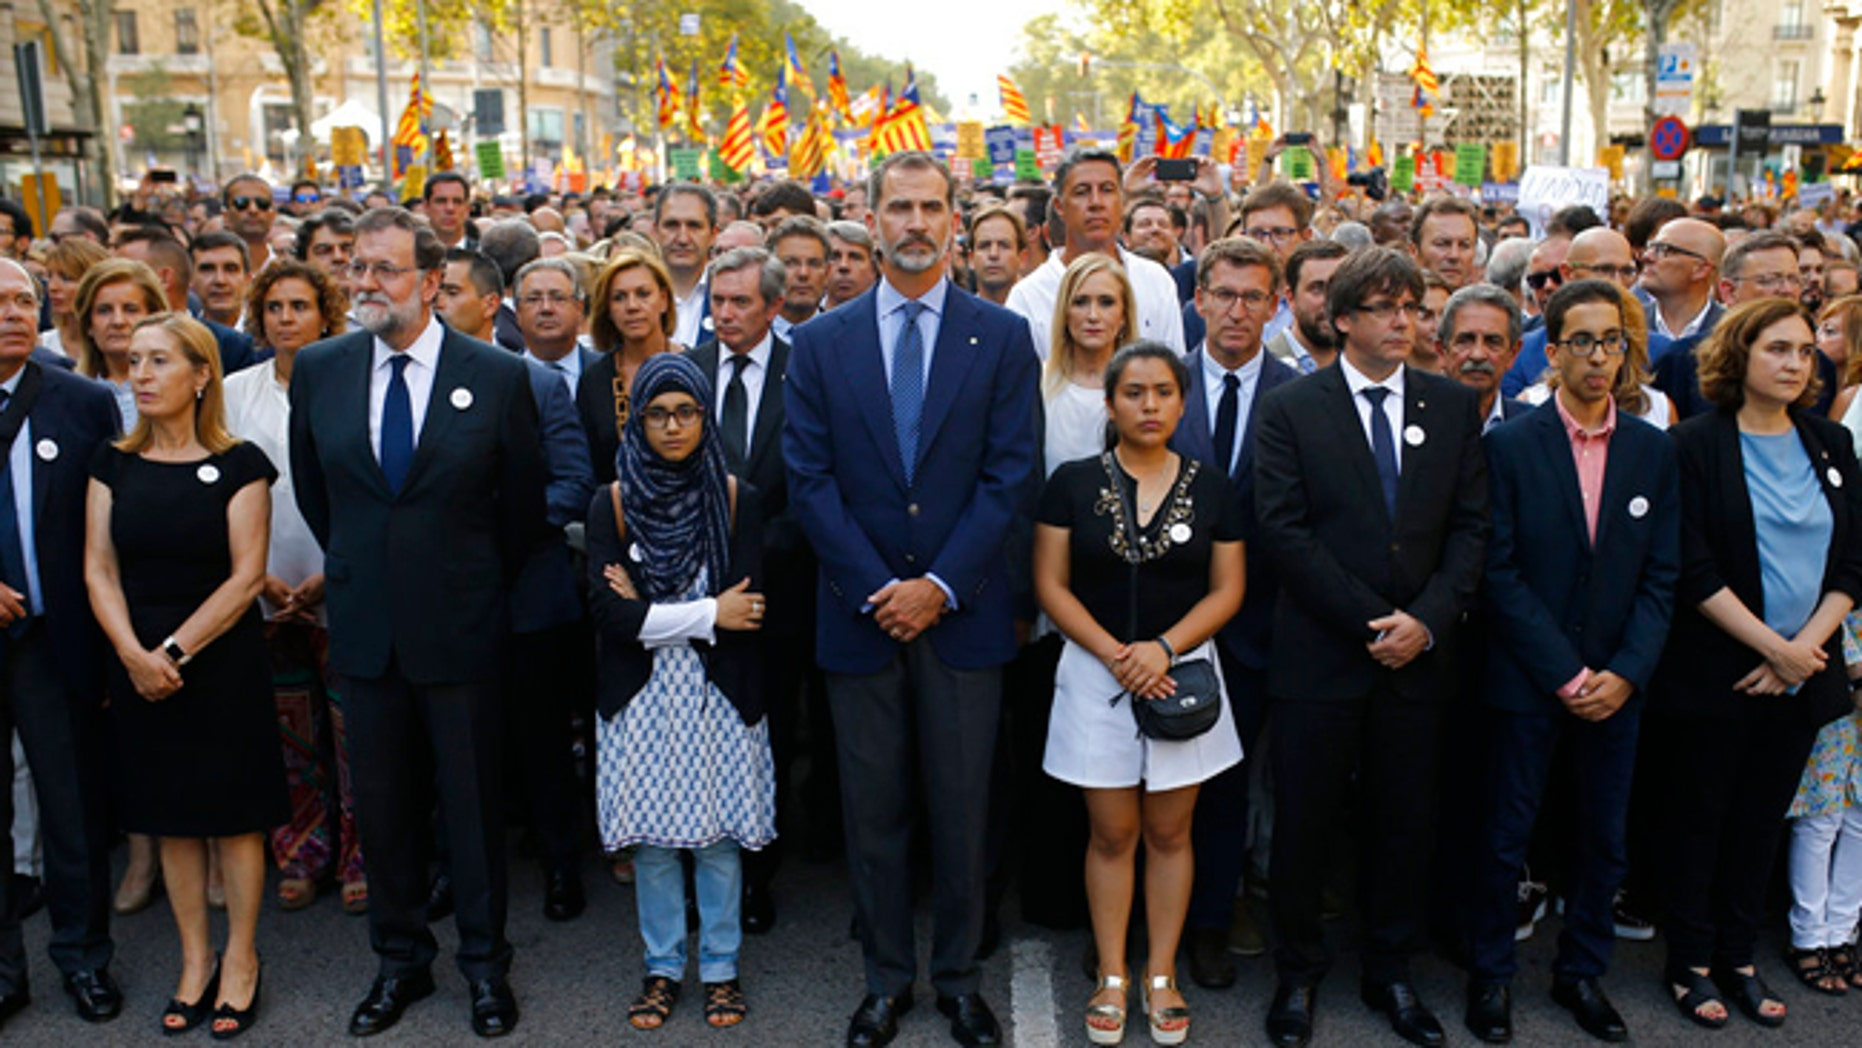 Spain's King Felipe, centre, Spain's Prime Minister Mariano Rajoy, 3rd left and Catalonia regional President Carles Puigdemont, 4th from right and other politicians take part in a demonstration condemning the attacks that killed 15 people last week in Barcelona, Spain, Saturday, Aug. 26, 2017.